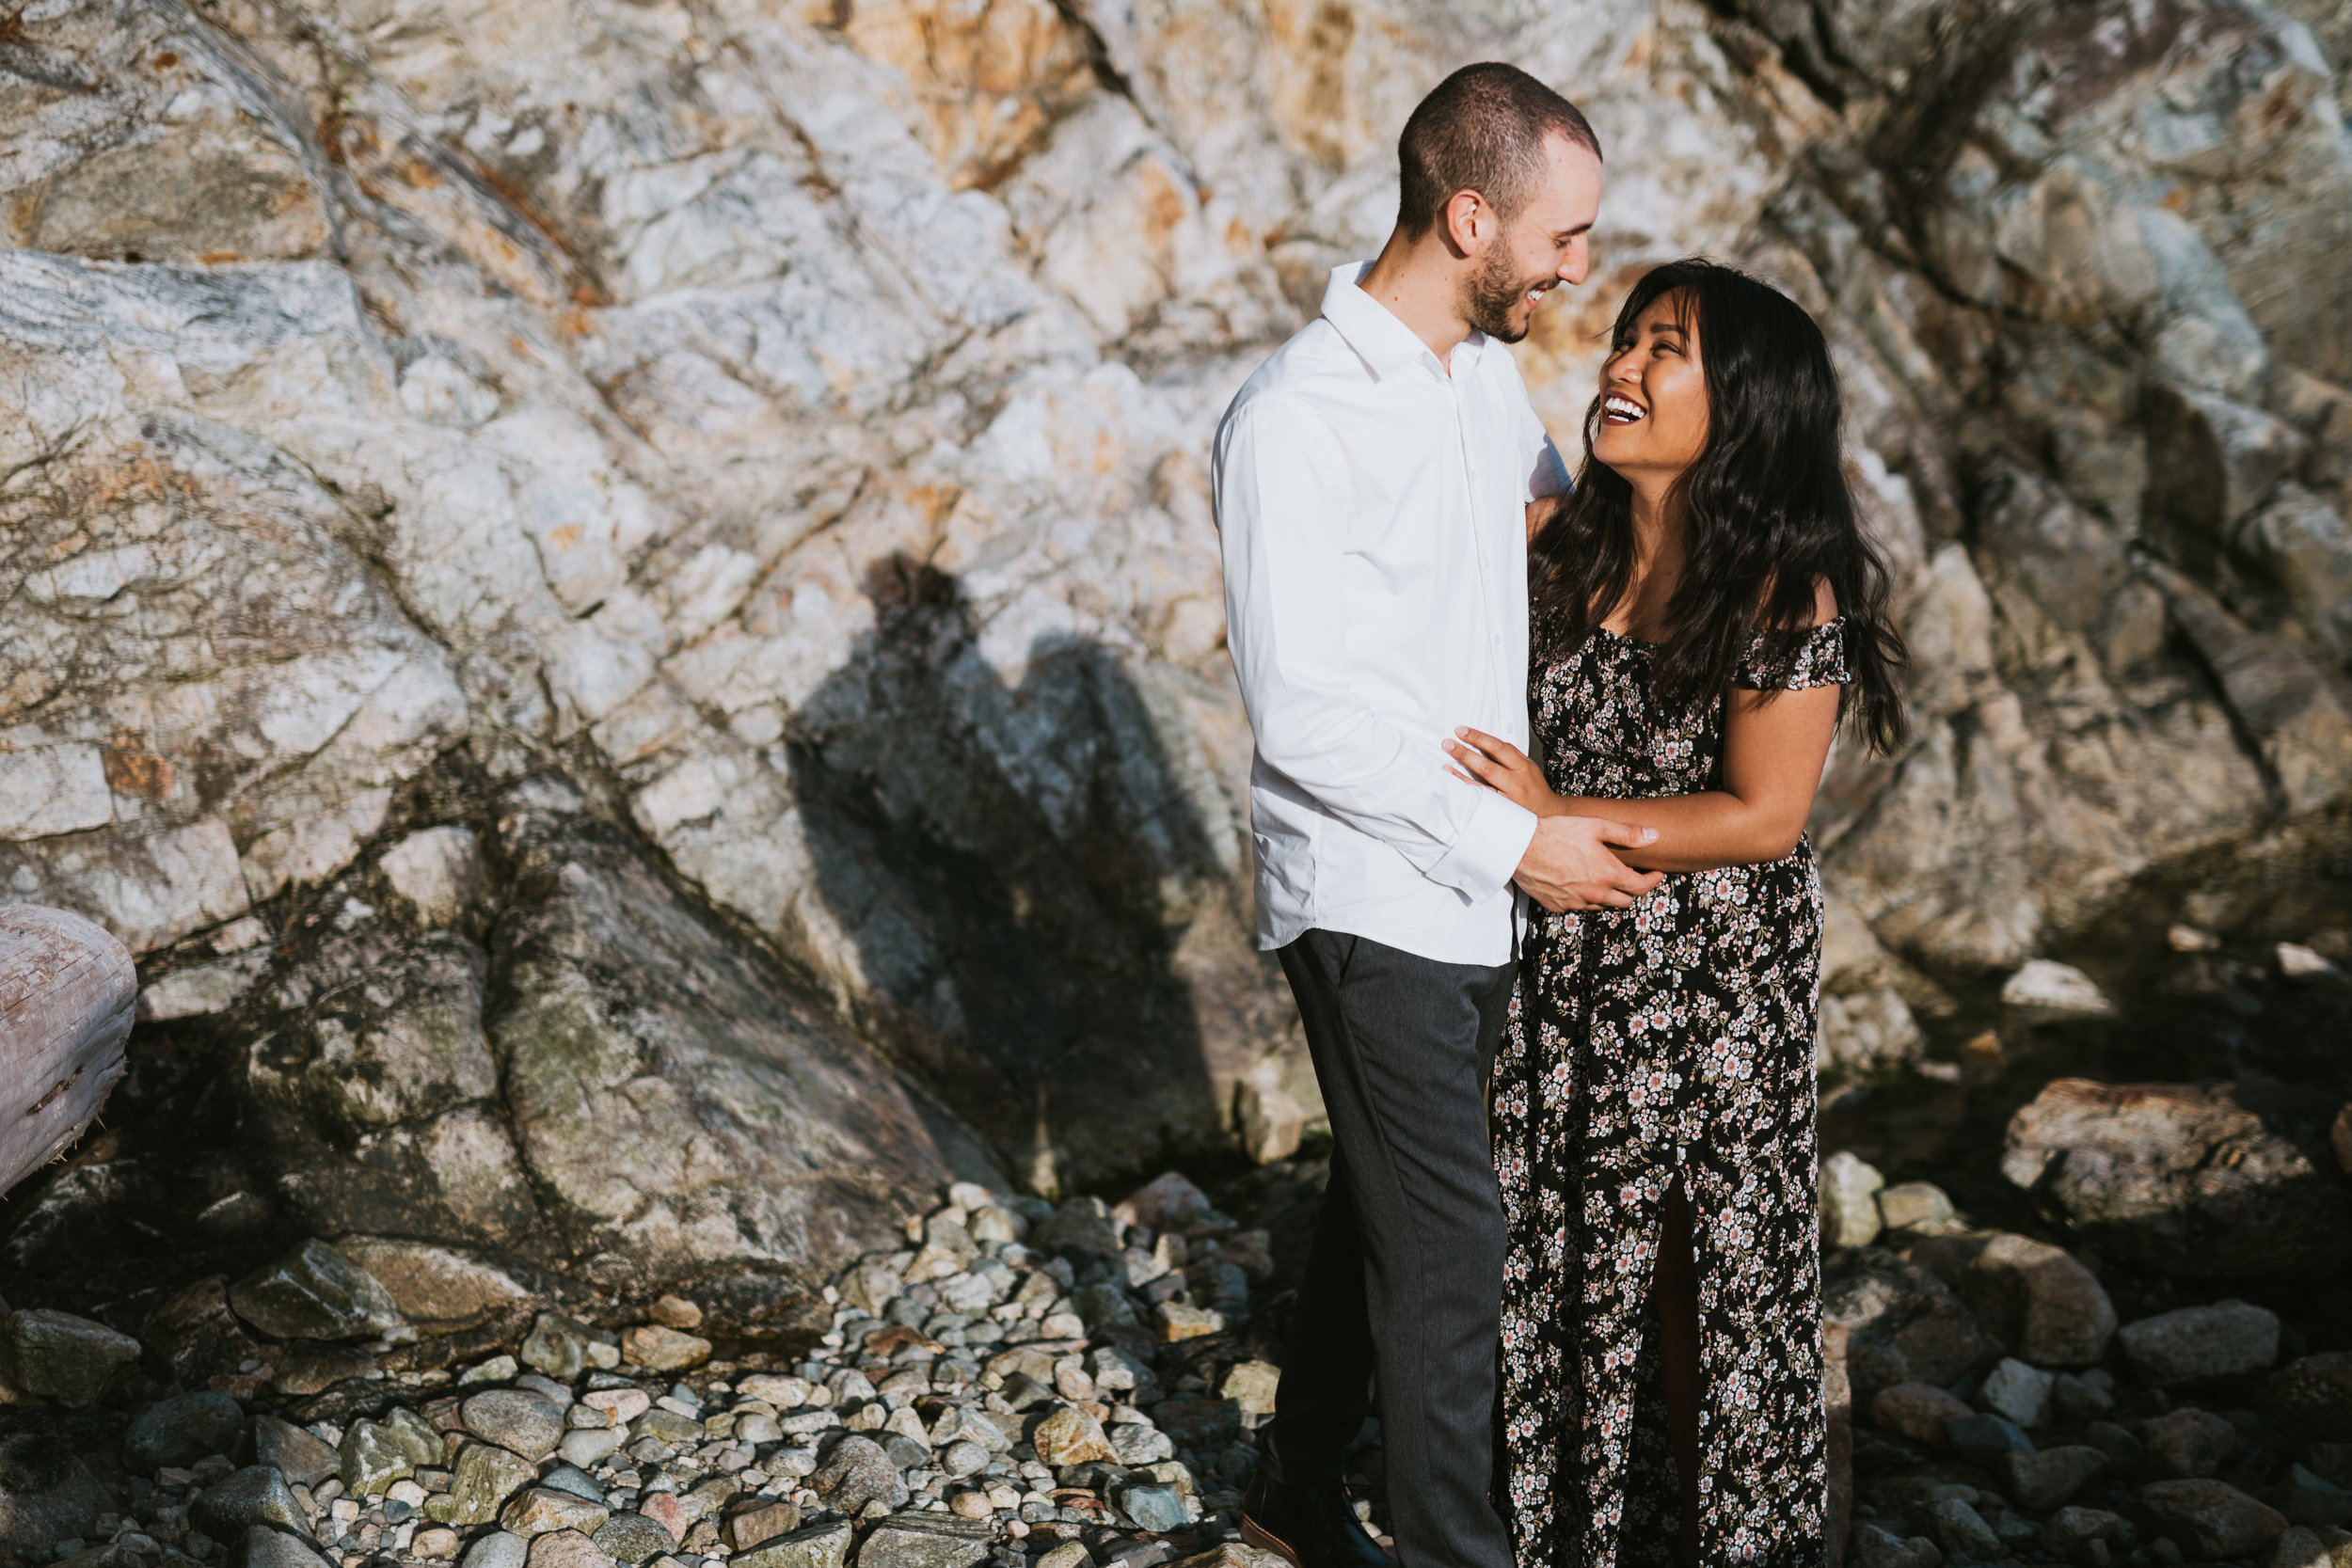 oliver-rabanes-vancouver-surrey-whytecliff-park-proposal-engagement-photography-34.JPG